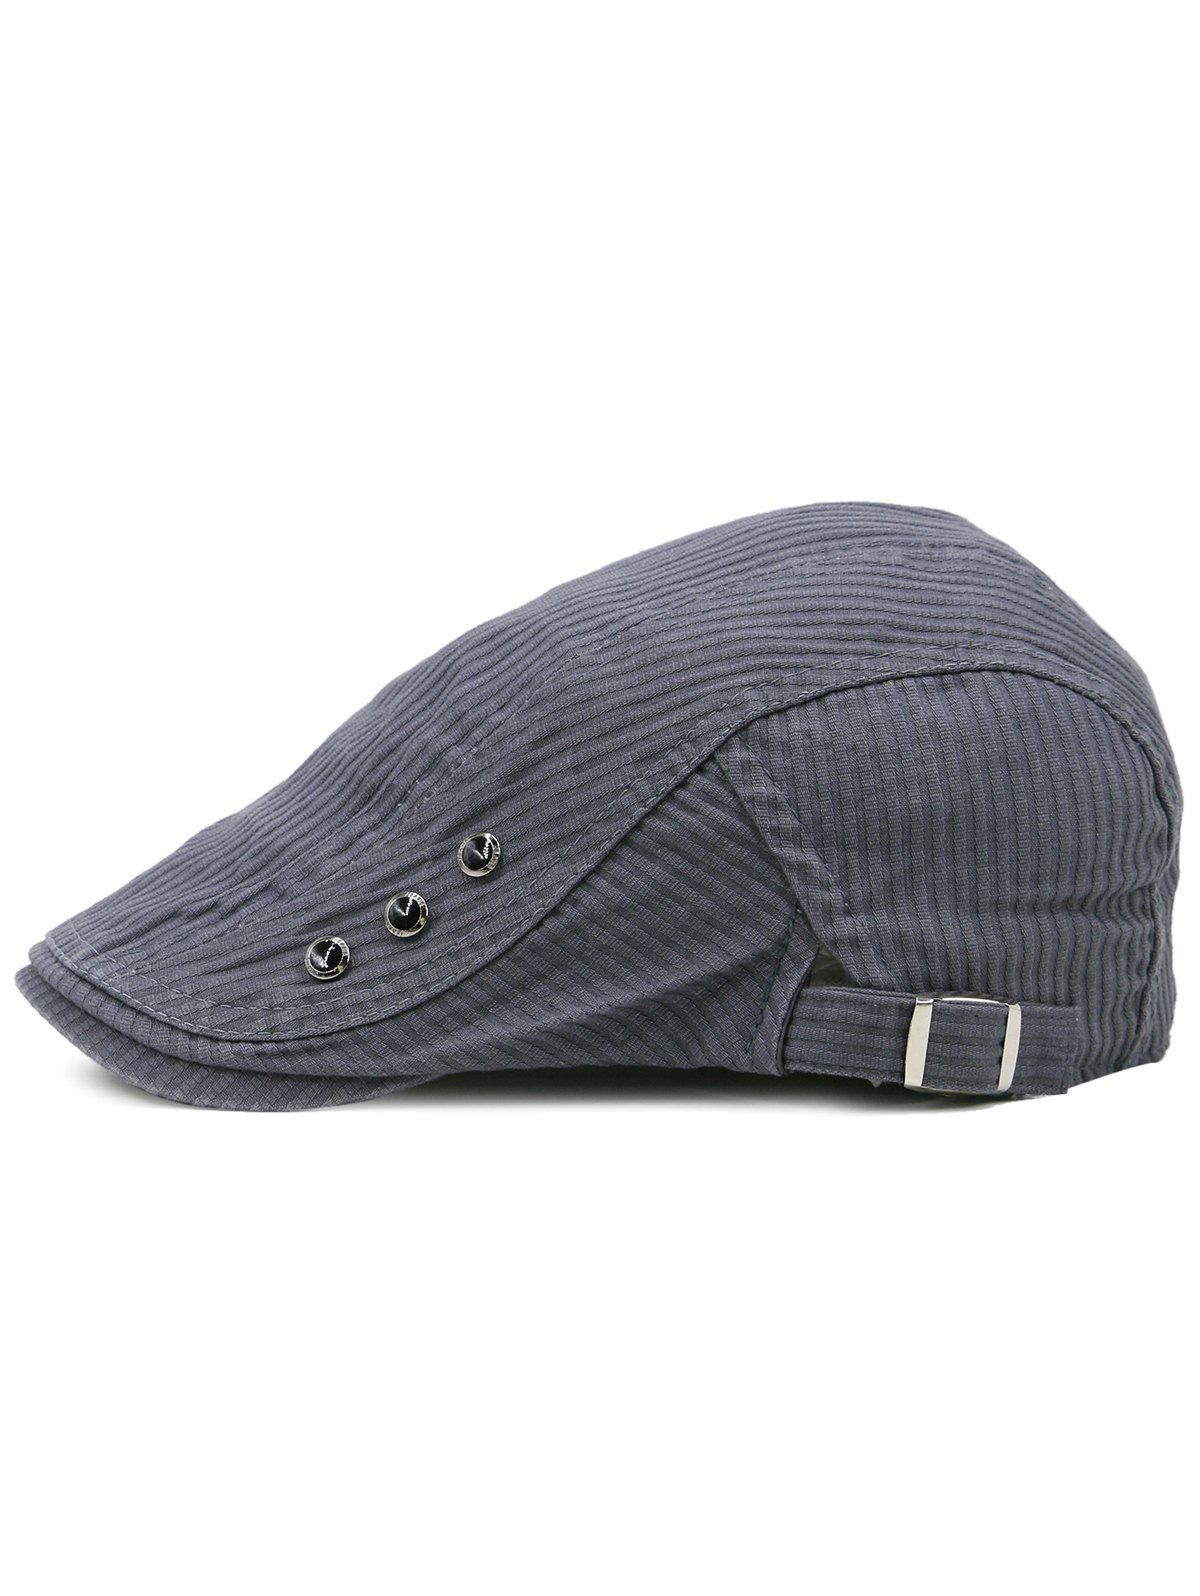 Striped Pattern Rivets Adjustable Cabbie Hat - ASH GRAY